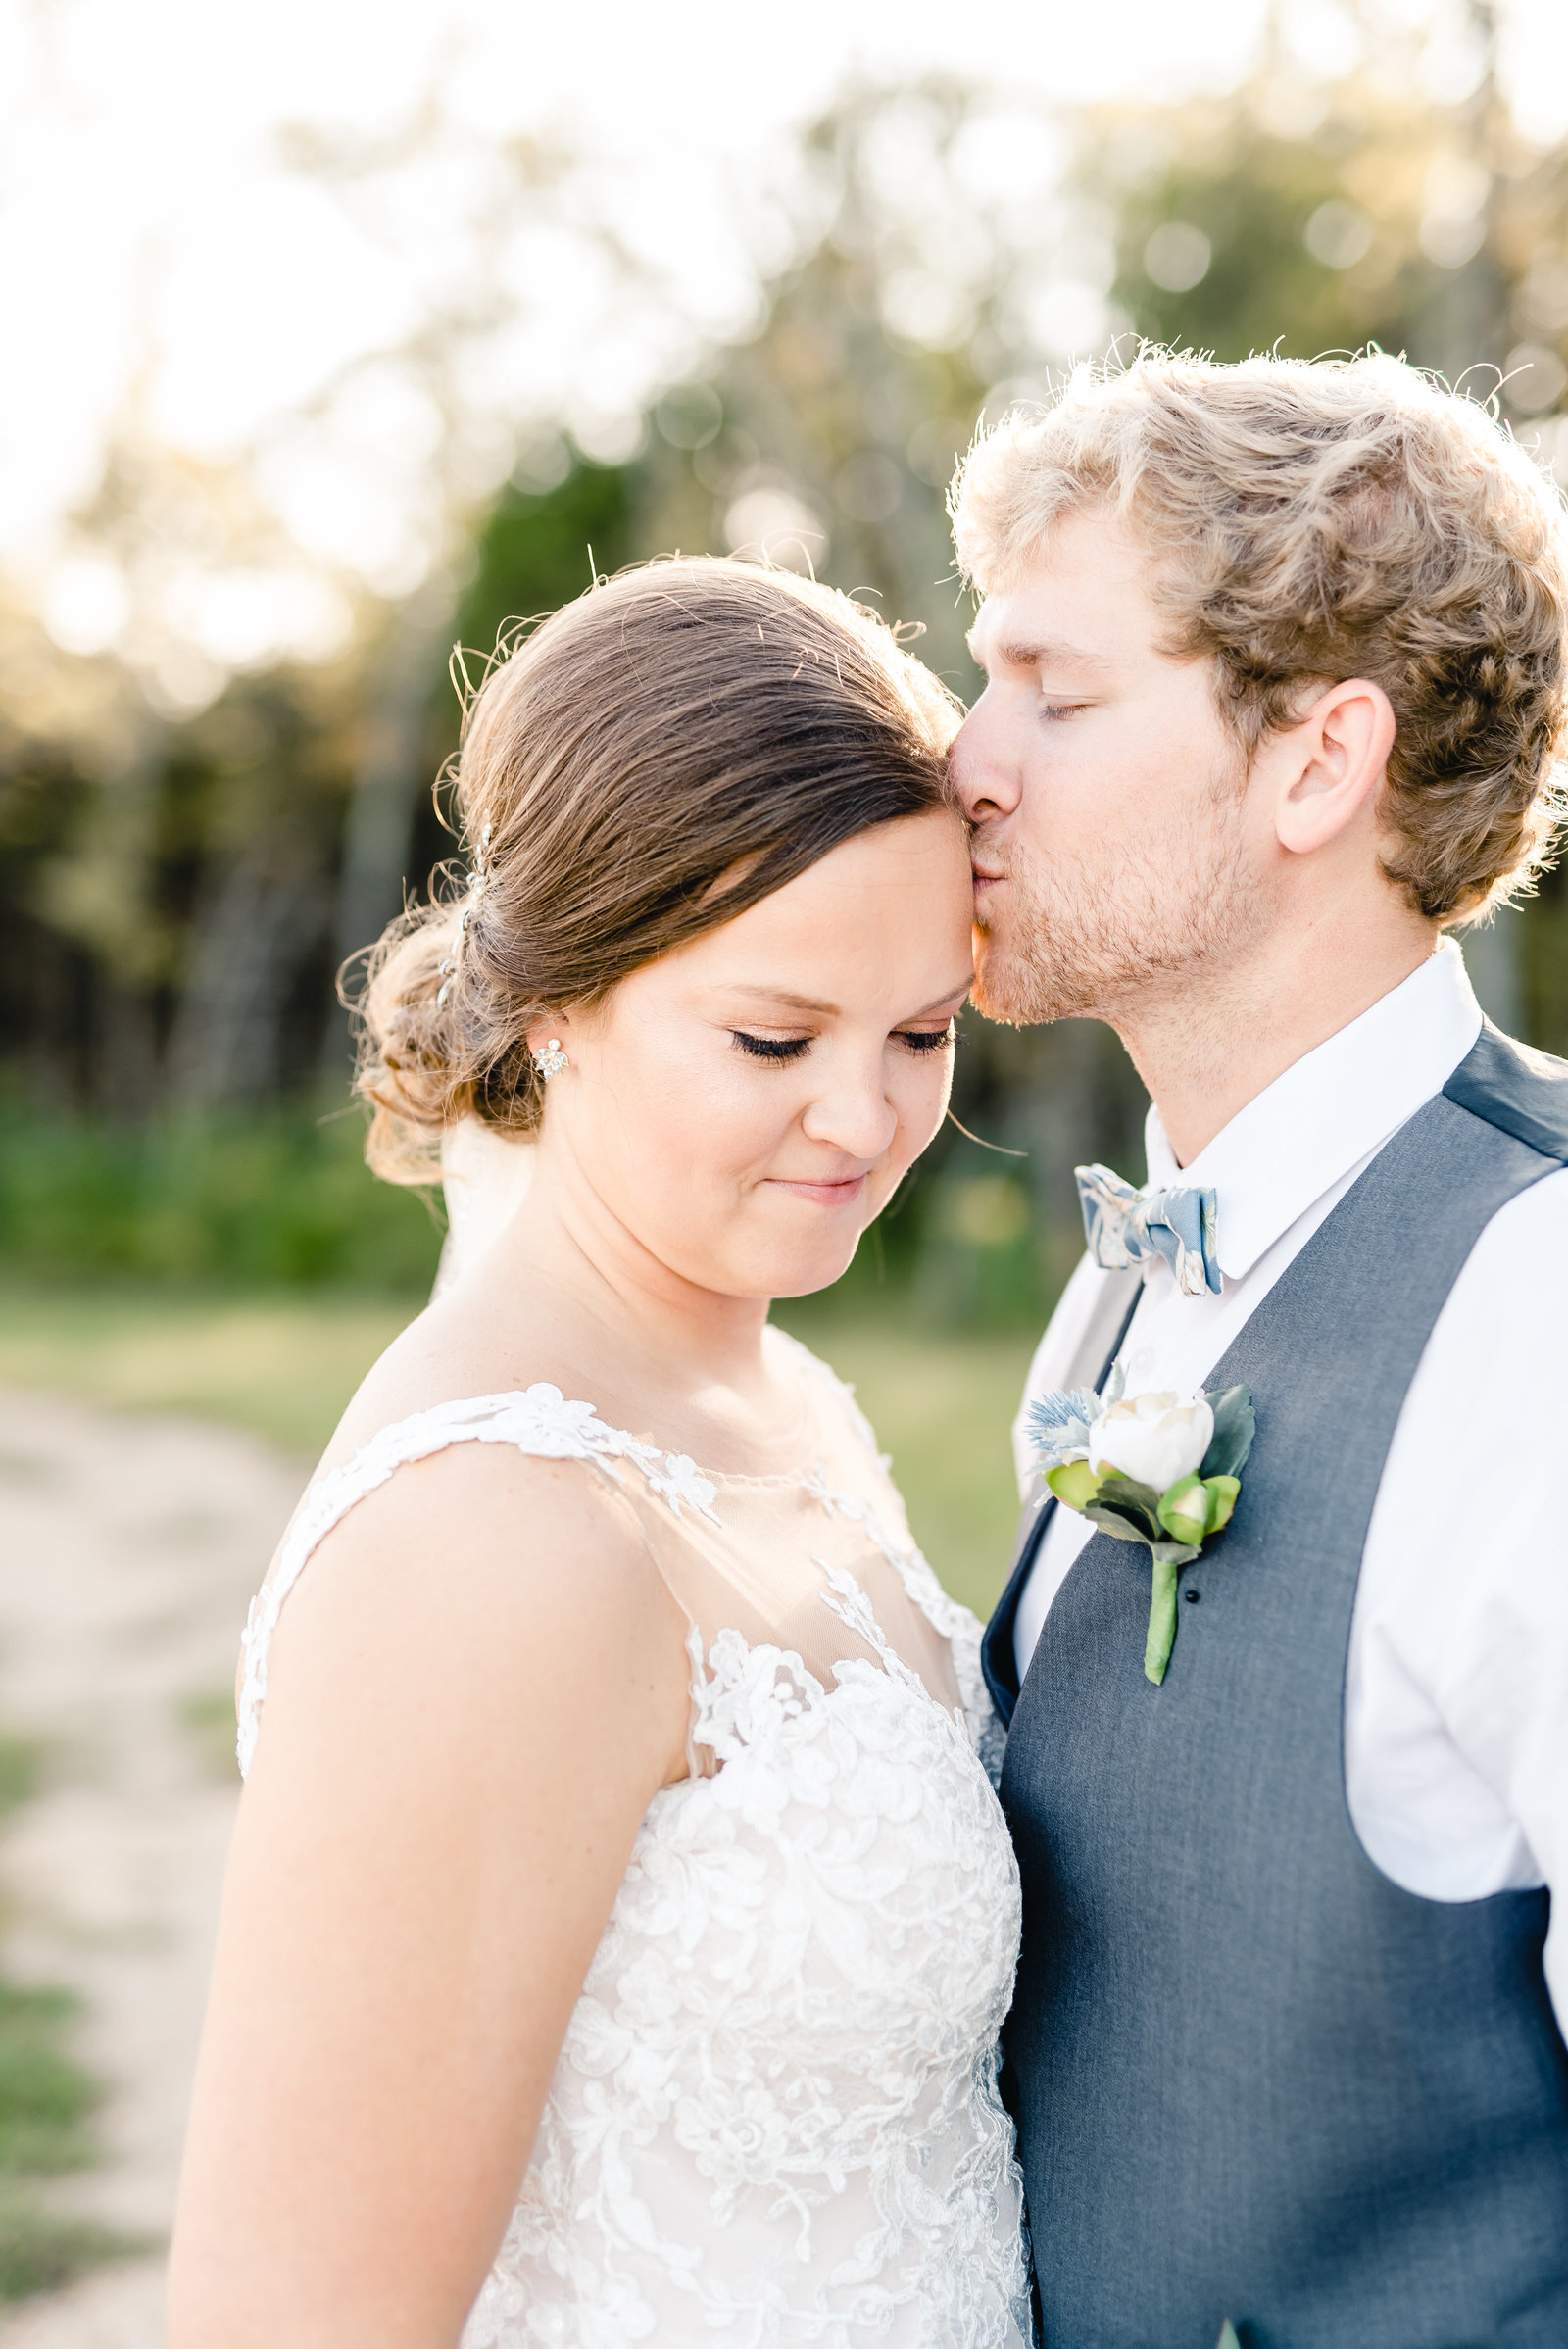 WeiderWeddingBrideandGroomPortraits-51